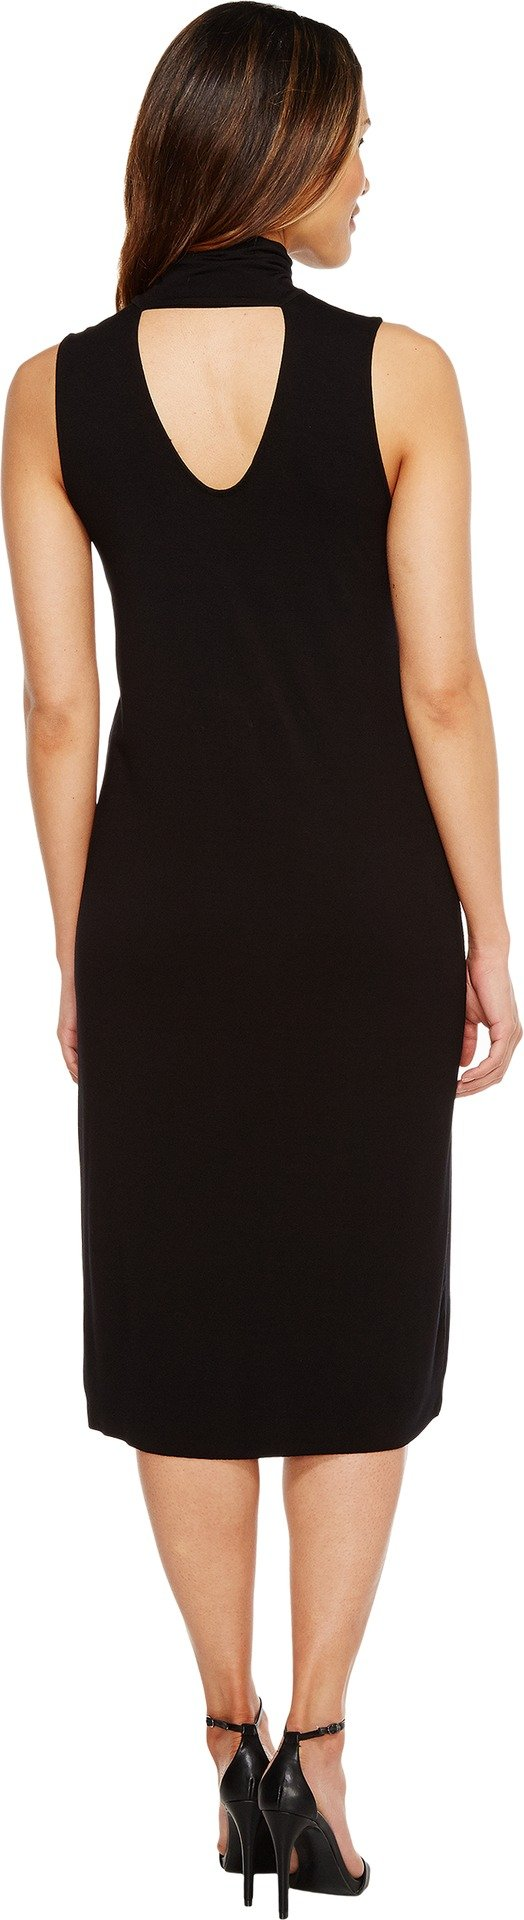 Splendid Women's Mock Neck Dress, Black, XS by Splendid (Image #3)